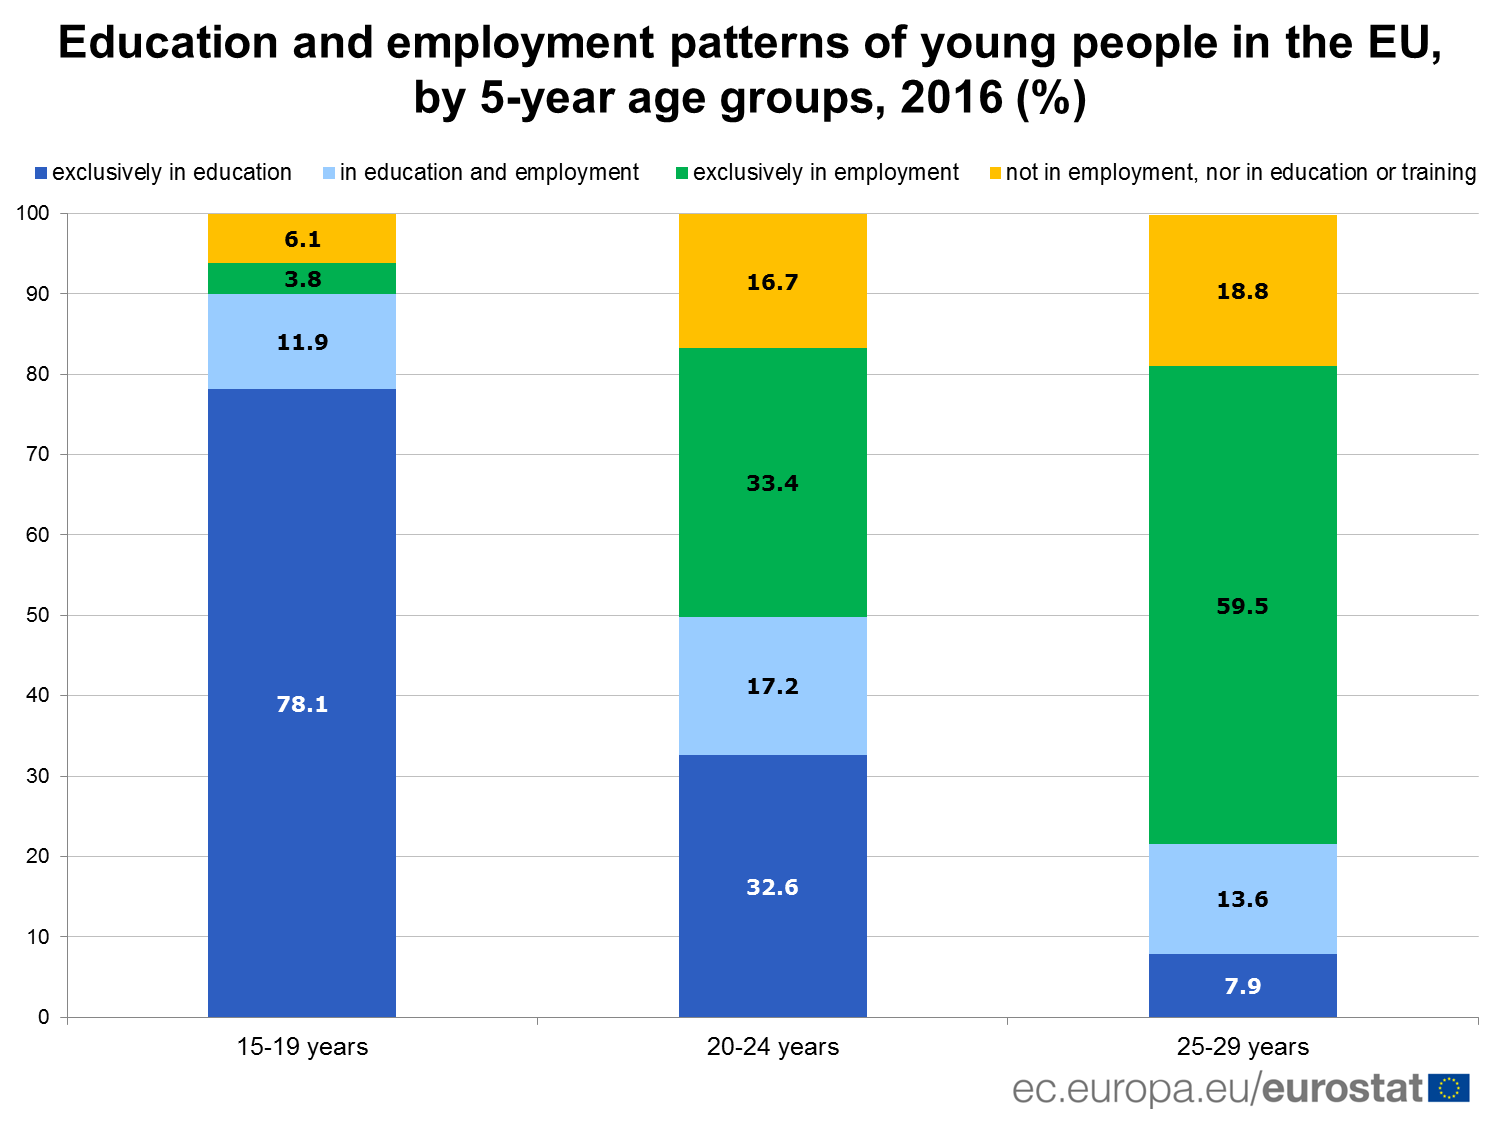 Education and employment patterns of young people in the EU, 2016